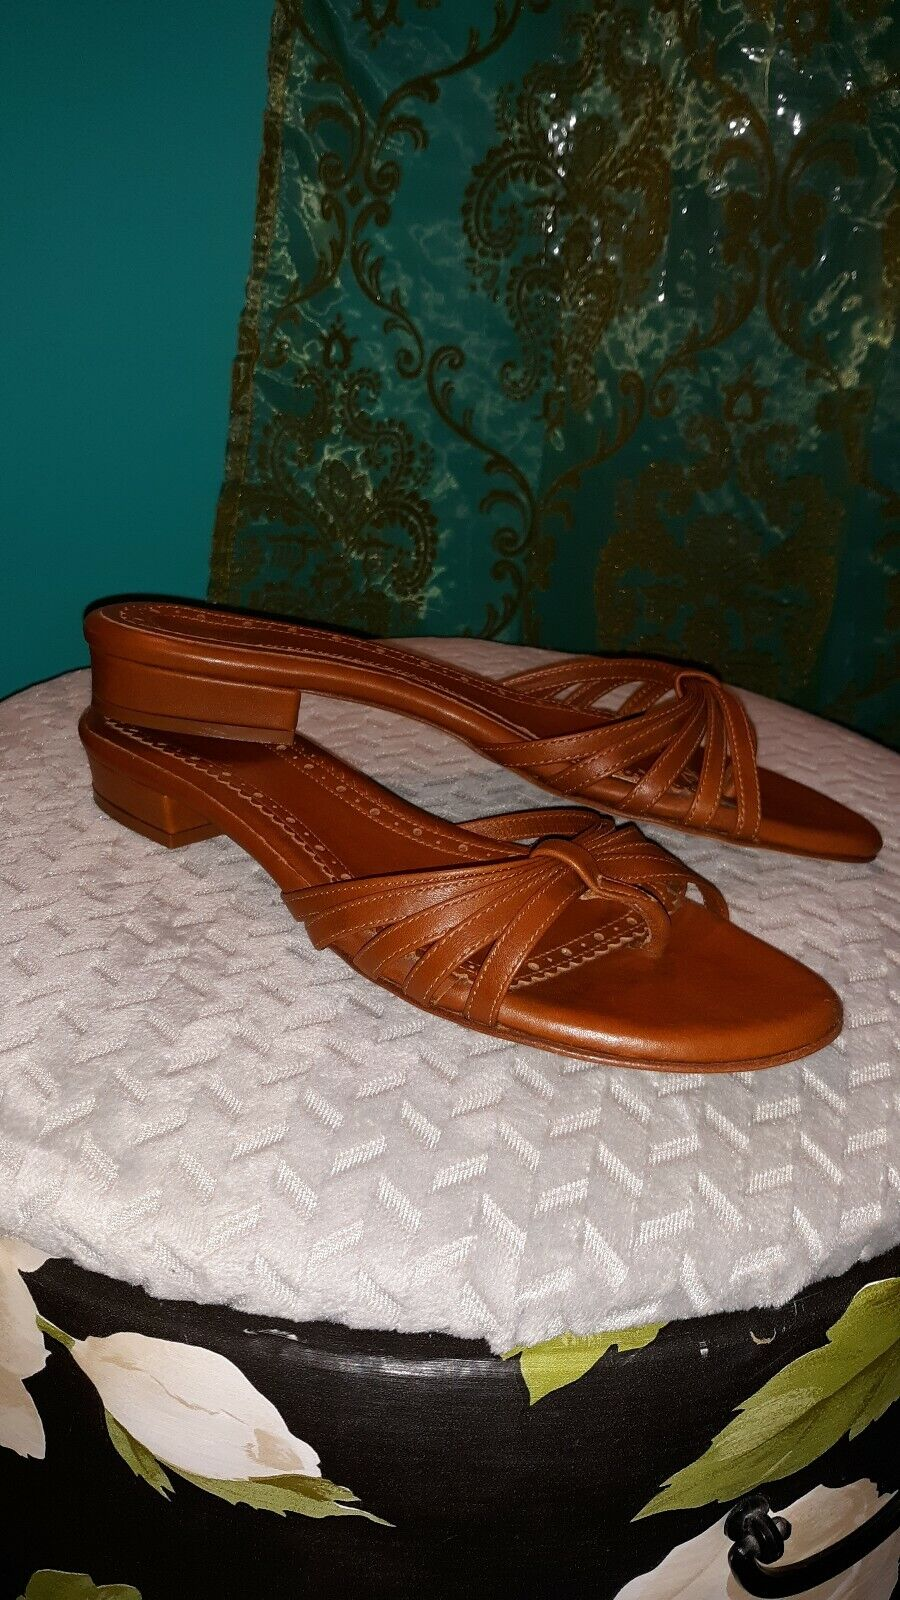 Brooks Bredhers Brown Carmel Leather Slide strapie tongue Sandals Womens sz7-7.5